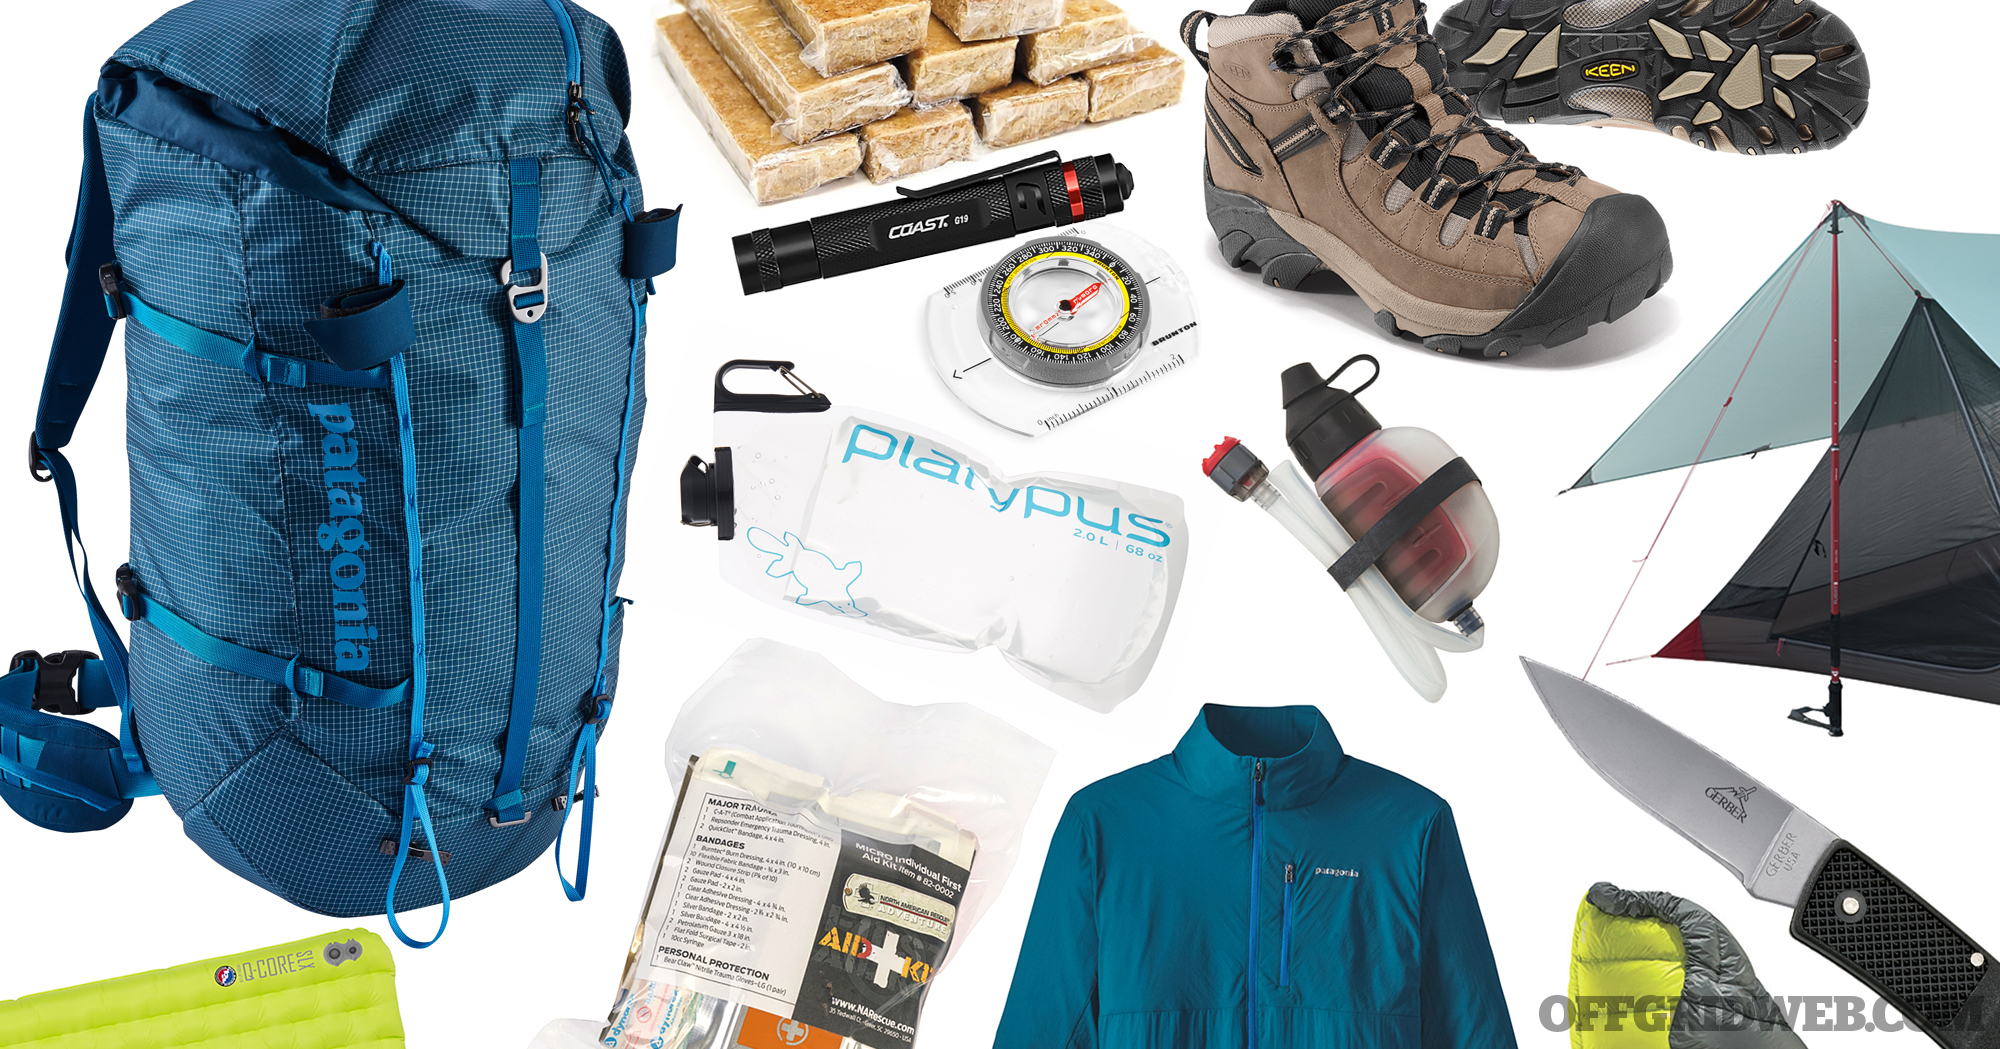 Planning An Ultralight Bug Out Bag Recoil Offgrid